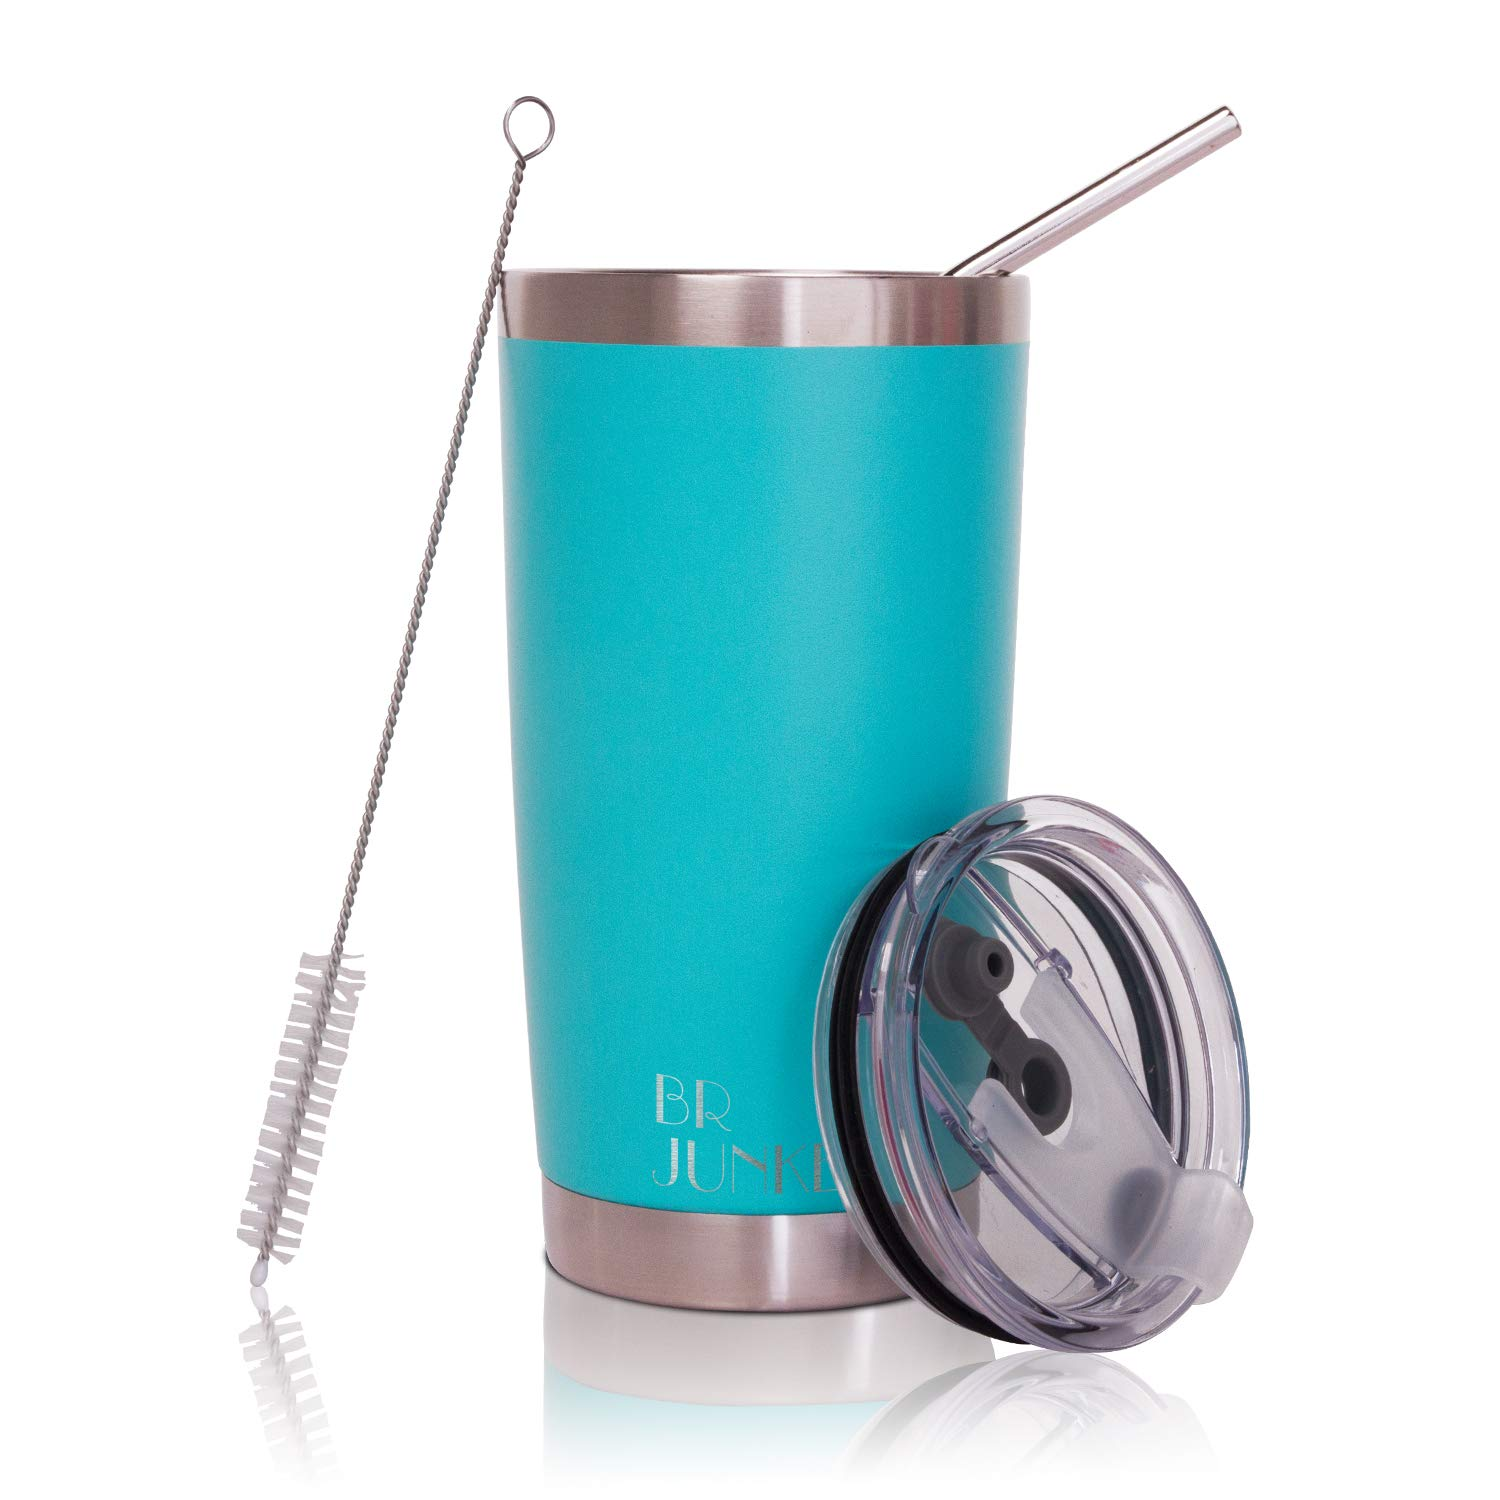 20 oz. Tumbler Double Wall Stainless Steel Vacuum Insulation Travel Mug with Crystal Clear Lid and Straw, Water Coffee Cup for Home,Office,School, Ice Drink, Hot Beverage,Mint